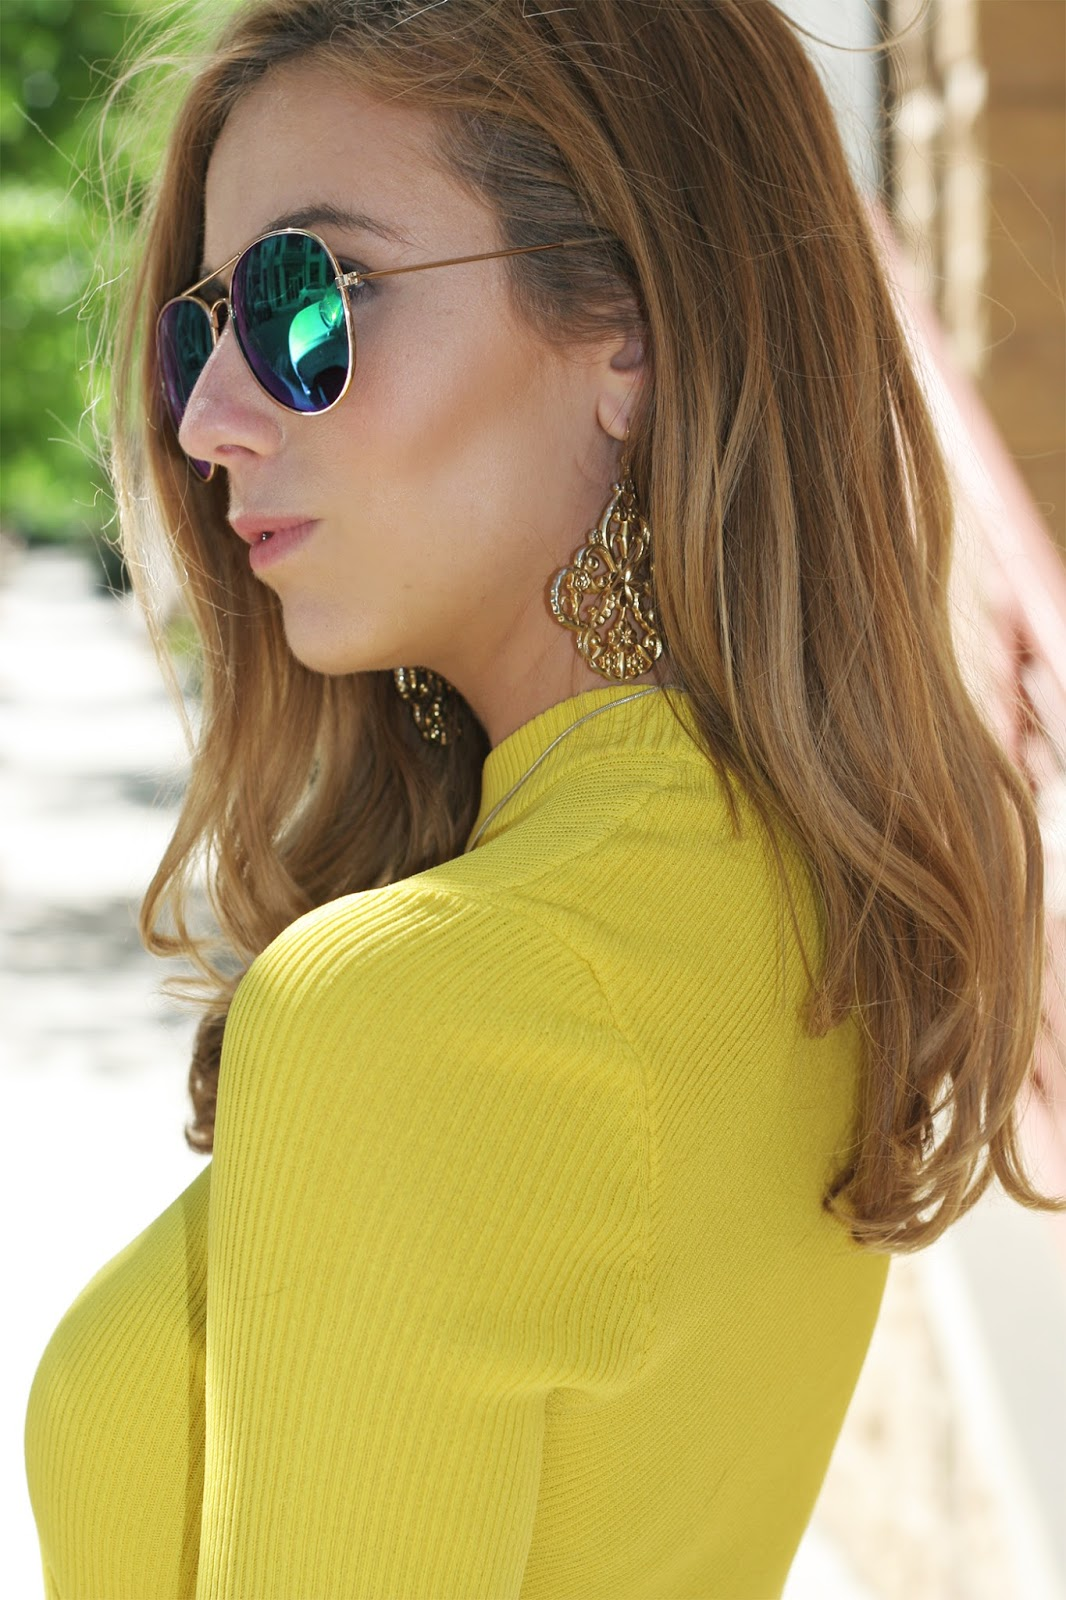 How-to-wear-green-blue-mirrored-aviator-raybans-moon-&-lola-new-Orleans-earrings